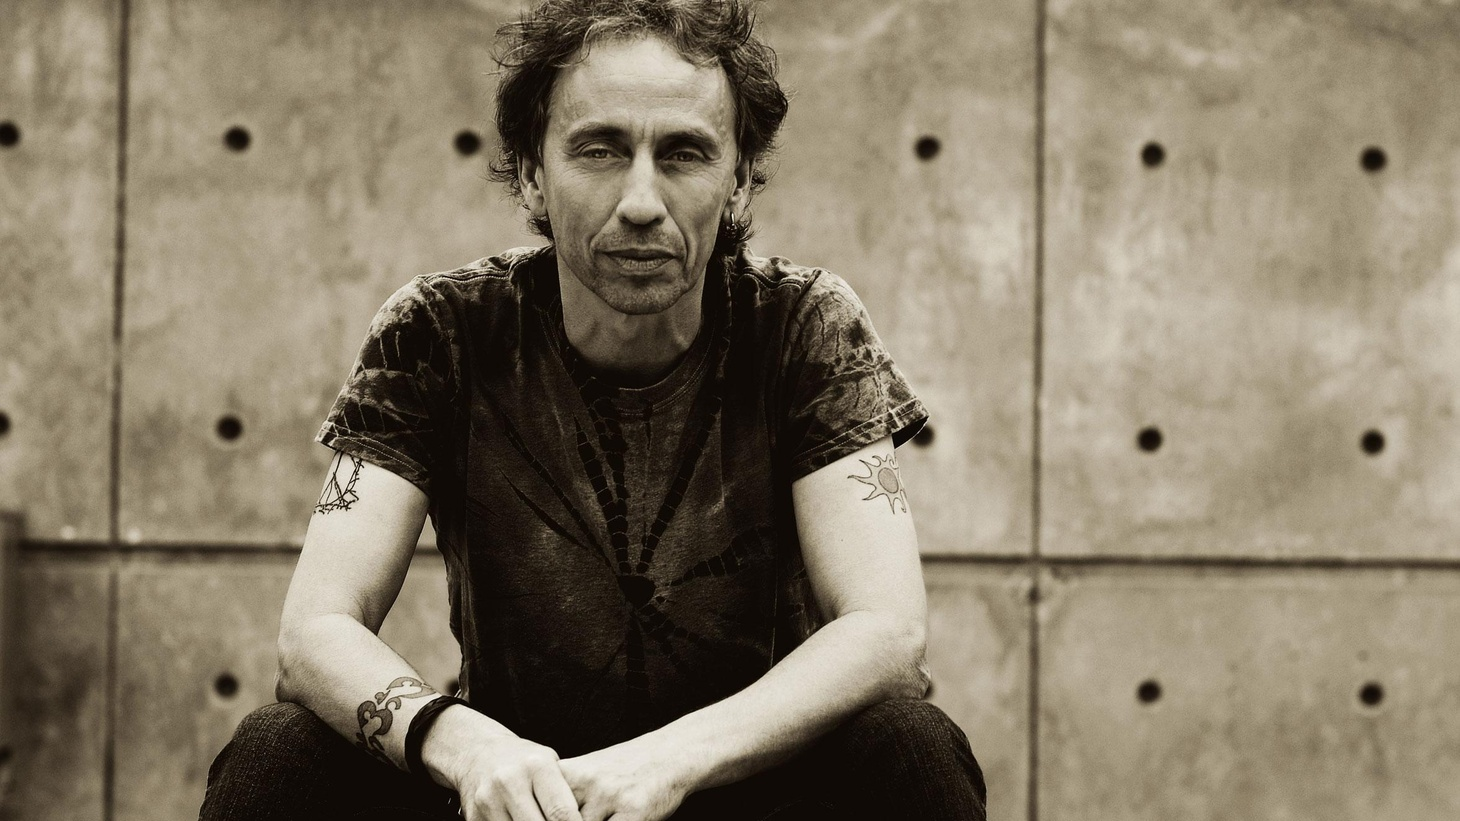 On the next edition of Sounds Eclectic, host Nic Harcourt plays new, upcoming and recent releases from MC Honky, Tricky, and the latest from Shelby Lynne. Plus a live in-studio performance from Guster, all this and much more on the next Sounds Eclectic.